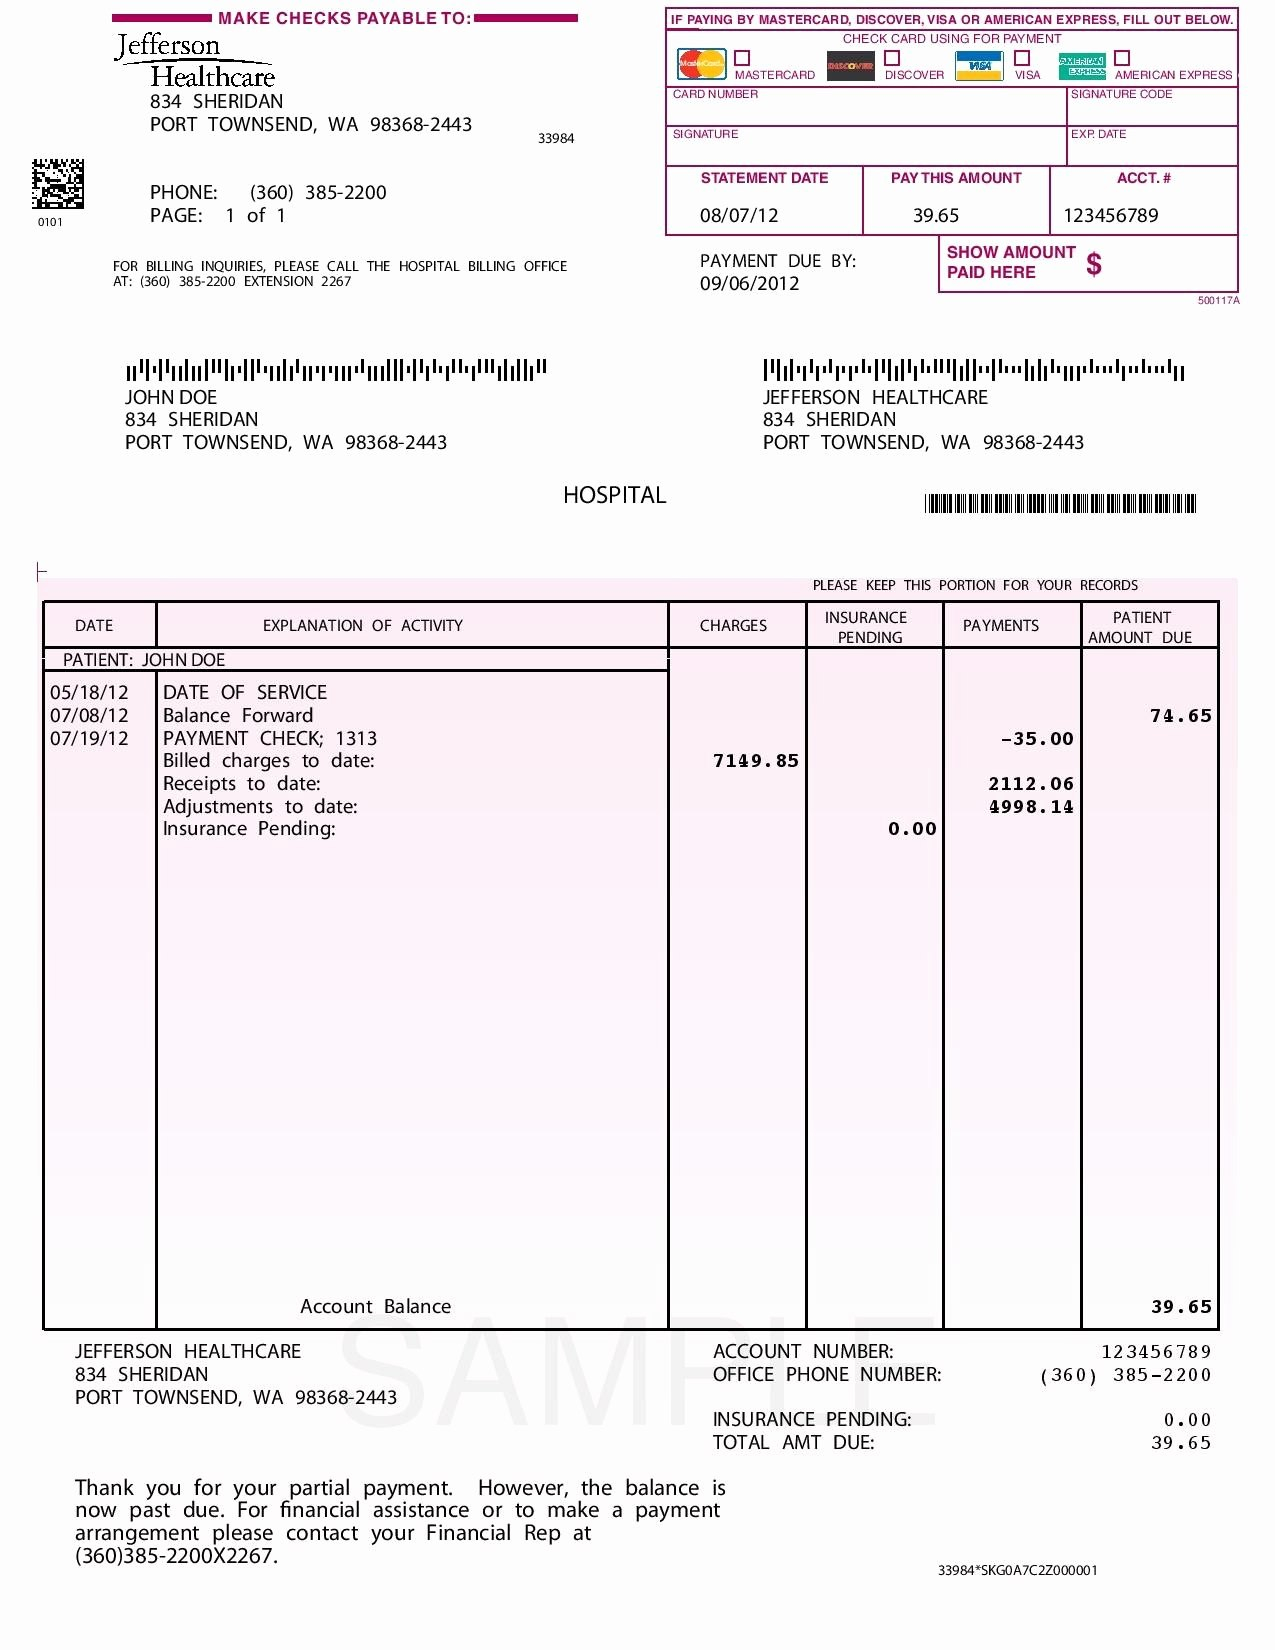 Sample Invoice With Net  Template Payment Terms Free Printable Regarding Net 30 Invoice Template